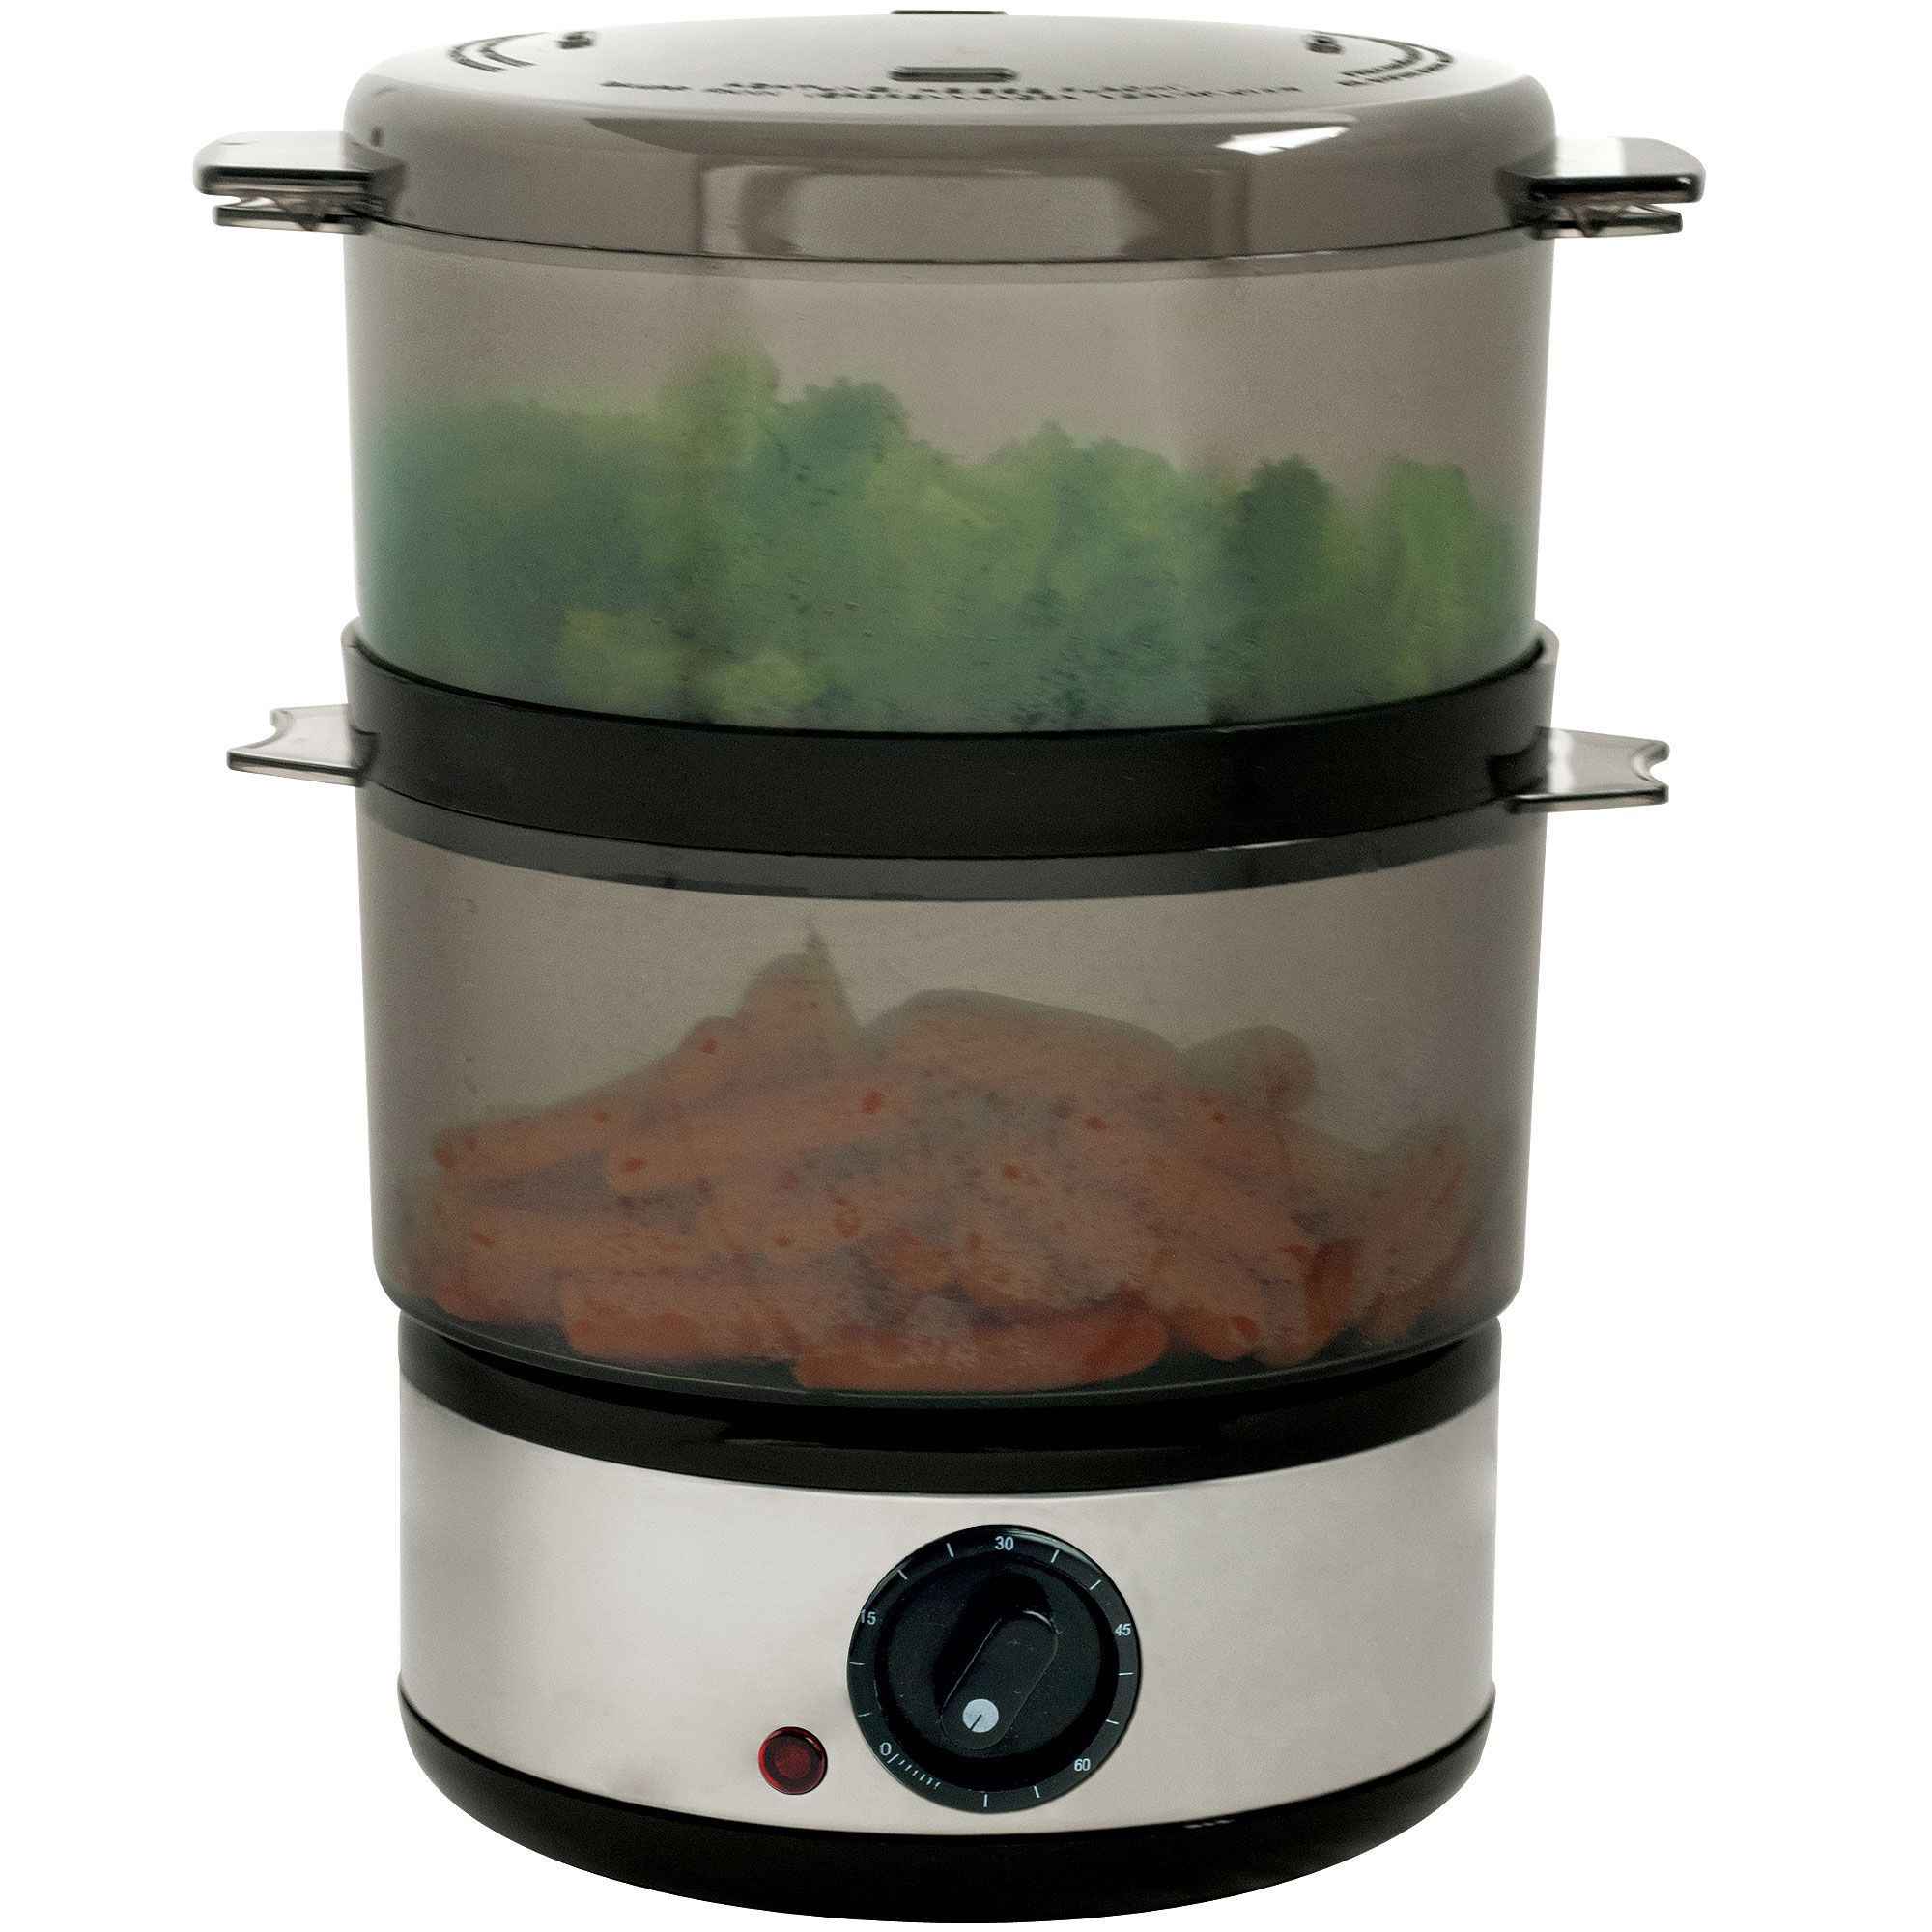 Chef Buddy 400 Watt Stainless Steel Food Steamer - 4 Quart Capacity